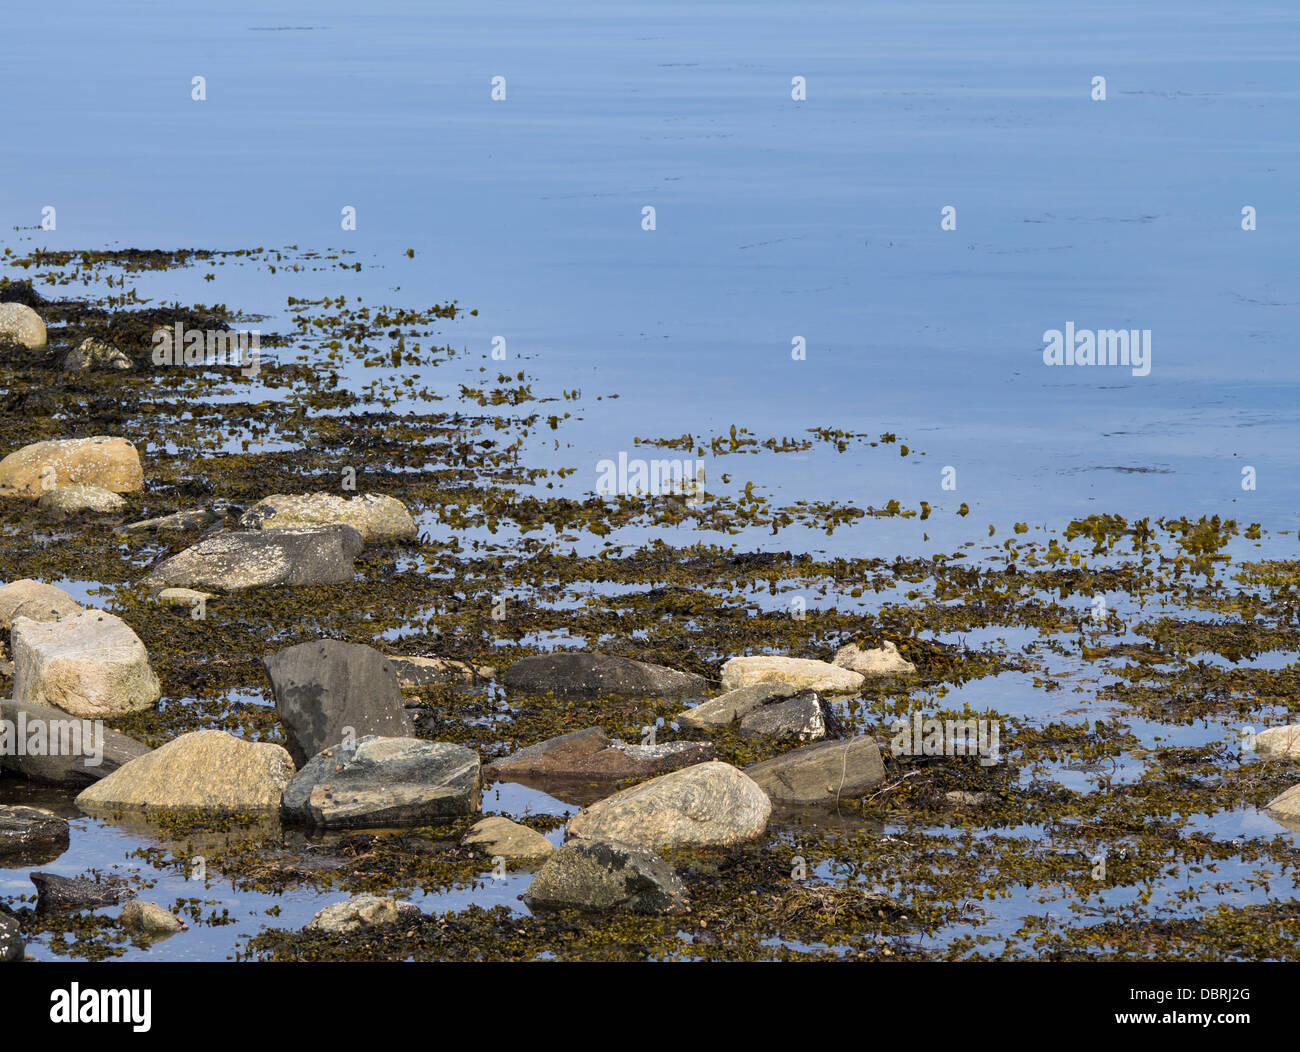 Coastline closeup, stones and littoral seaweeds Fucales a brown algae and kelp is common along the Norwegian shores - Stock Image